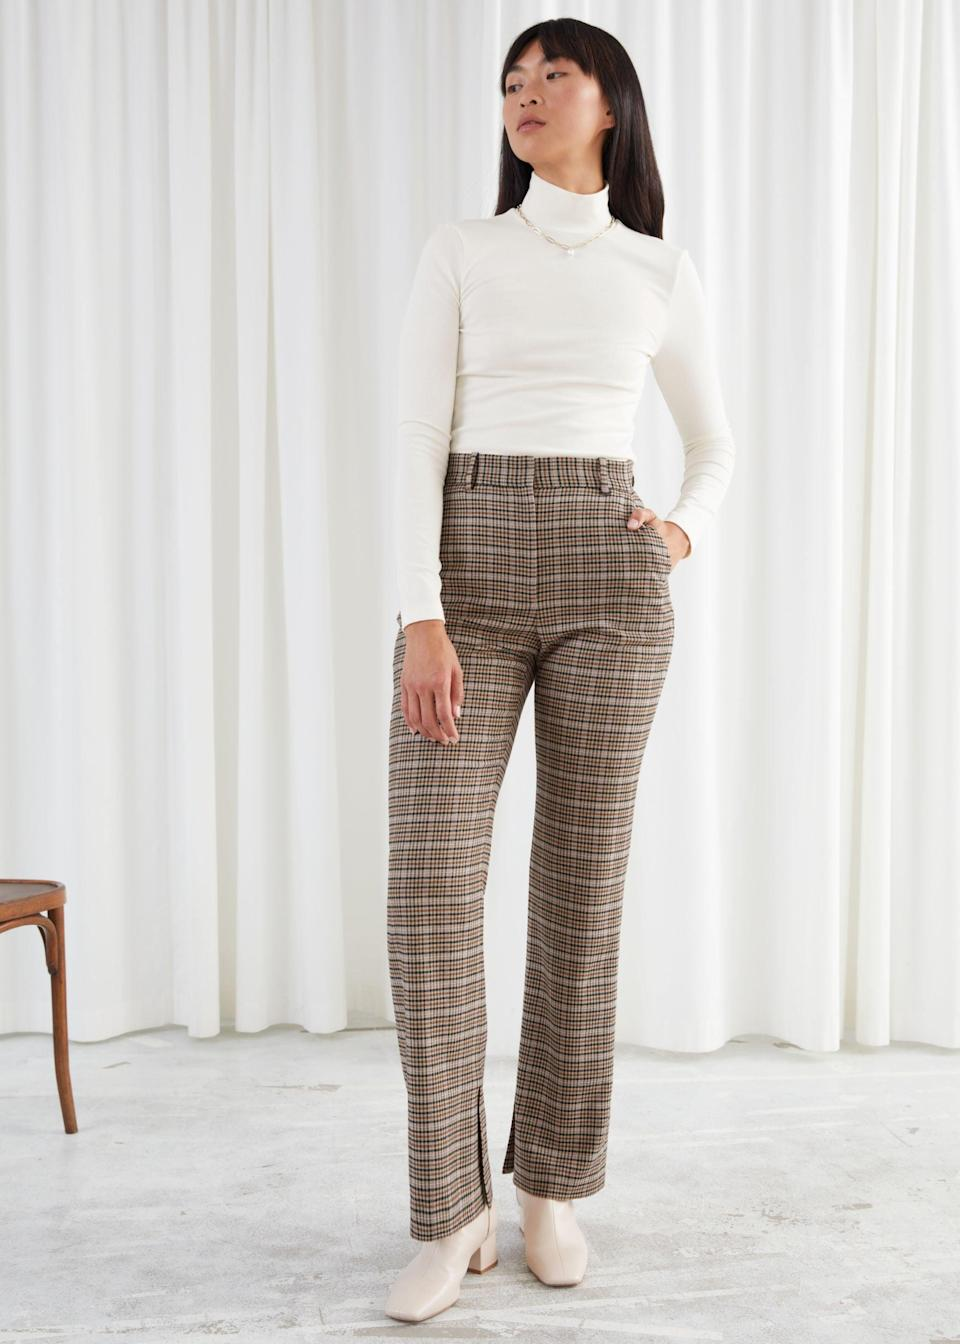 "<br><br><strong>& Other Stories</strong> Flared High Waist Trousers, $, available at <a href=""https://go.skimresources.com/?id=30283X879131&url=https%3A%2F%2Fwww.stories.com%2Fen_usd%2Fclothing%2Ftrousers%2Fproduct.flared-high-waist-trousers-beige.0904331001.html"" rel=""nofollow noopener"" target=""_blank"" data-ylk=""slk:& Other Stories"" class=""link rapid-noclick-resp"">& Other Stories</a>"